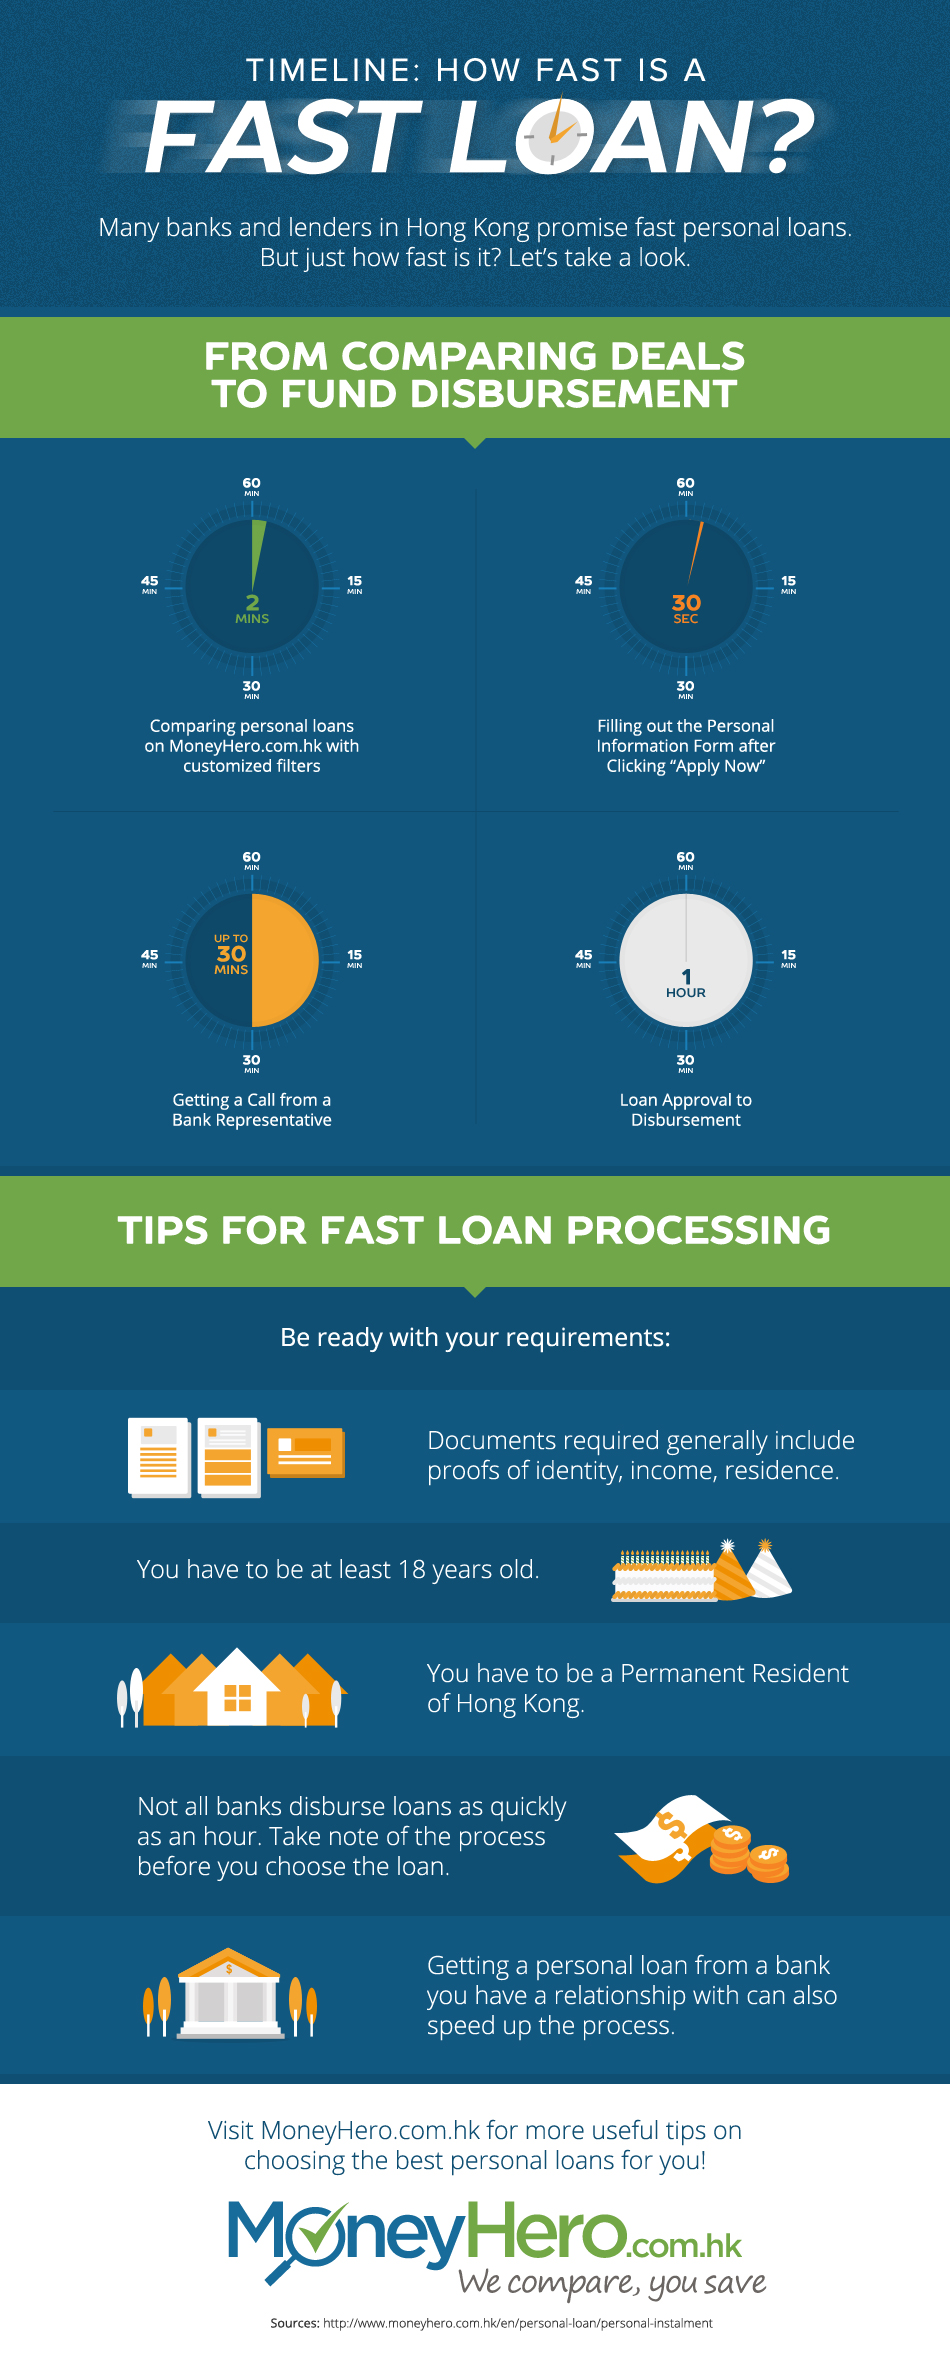 How Fast is a Fast Loan?